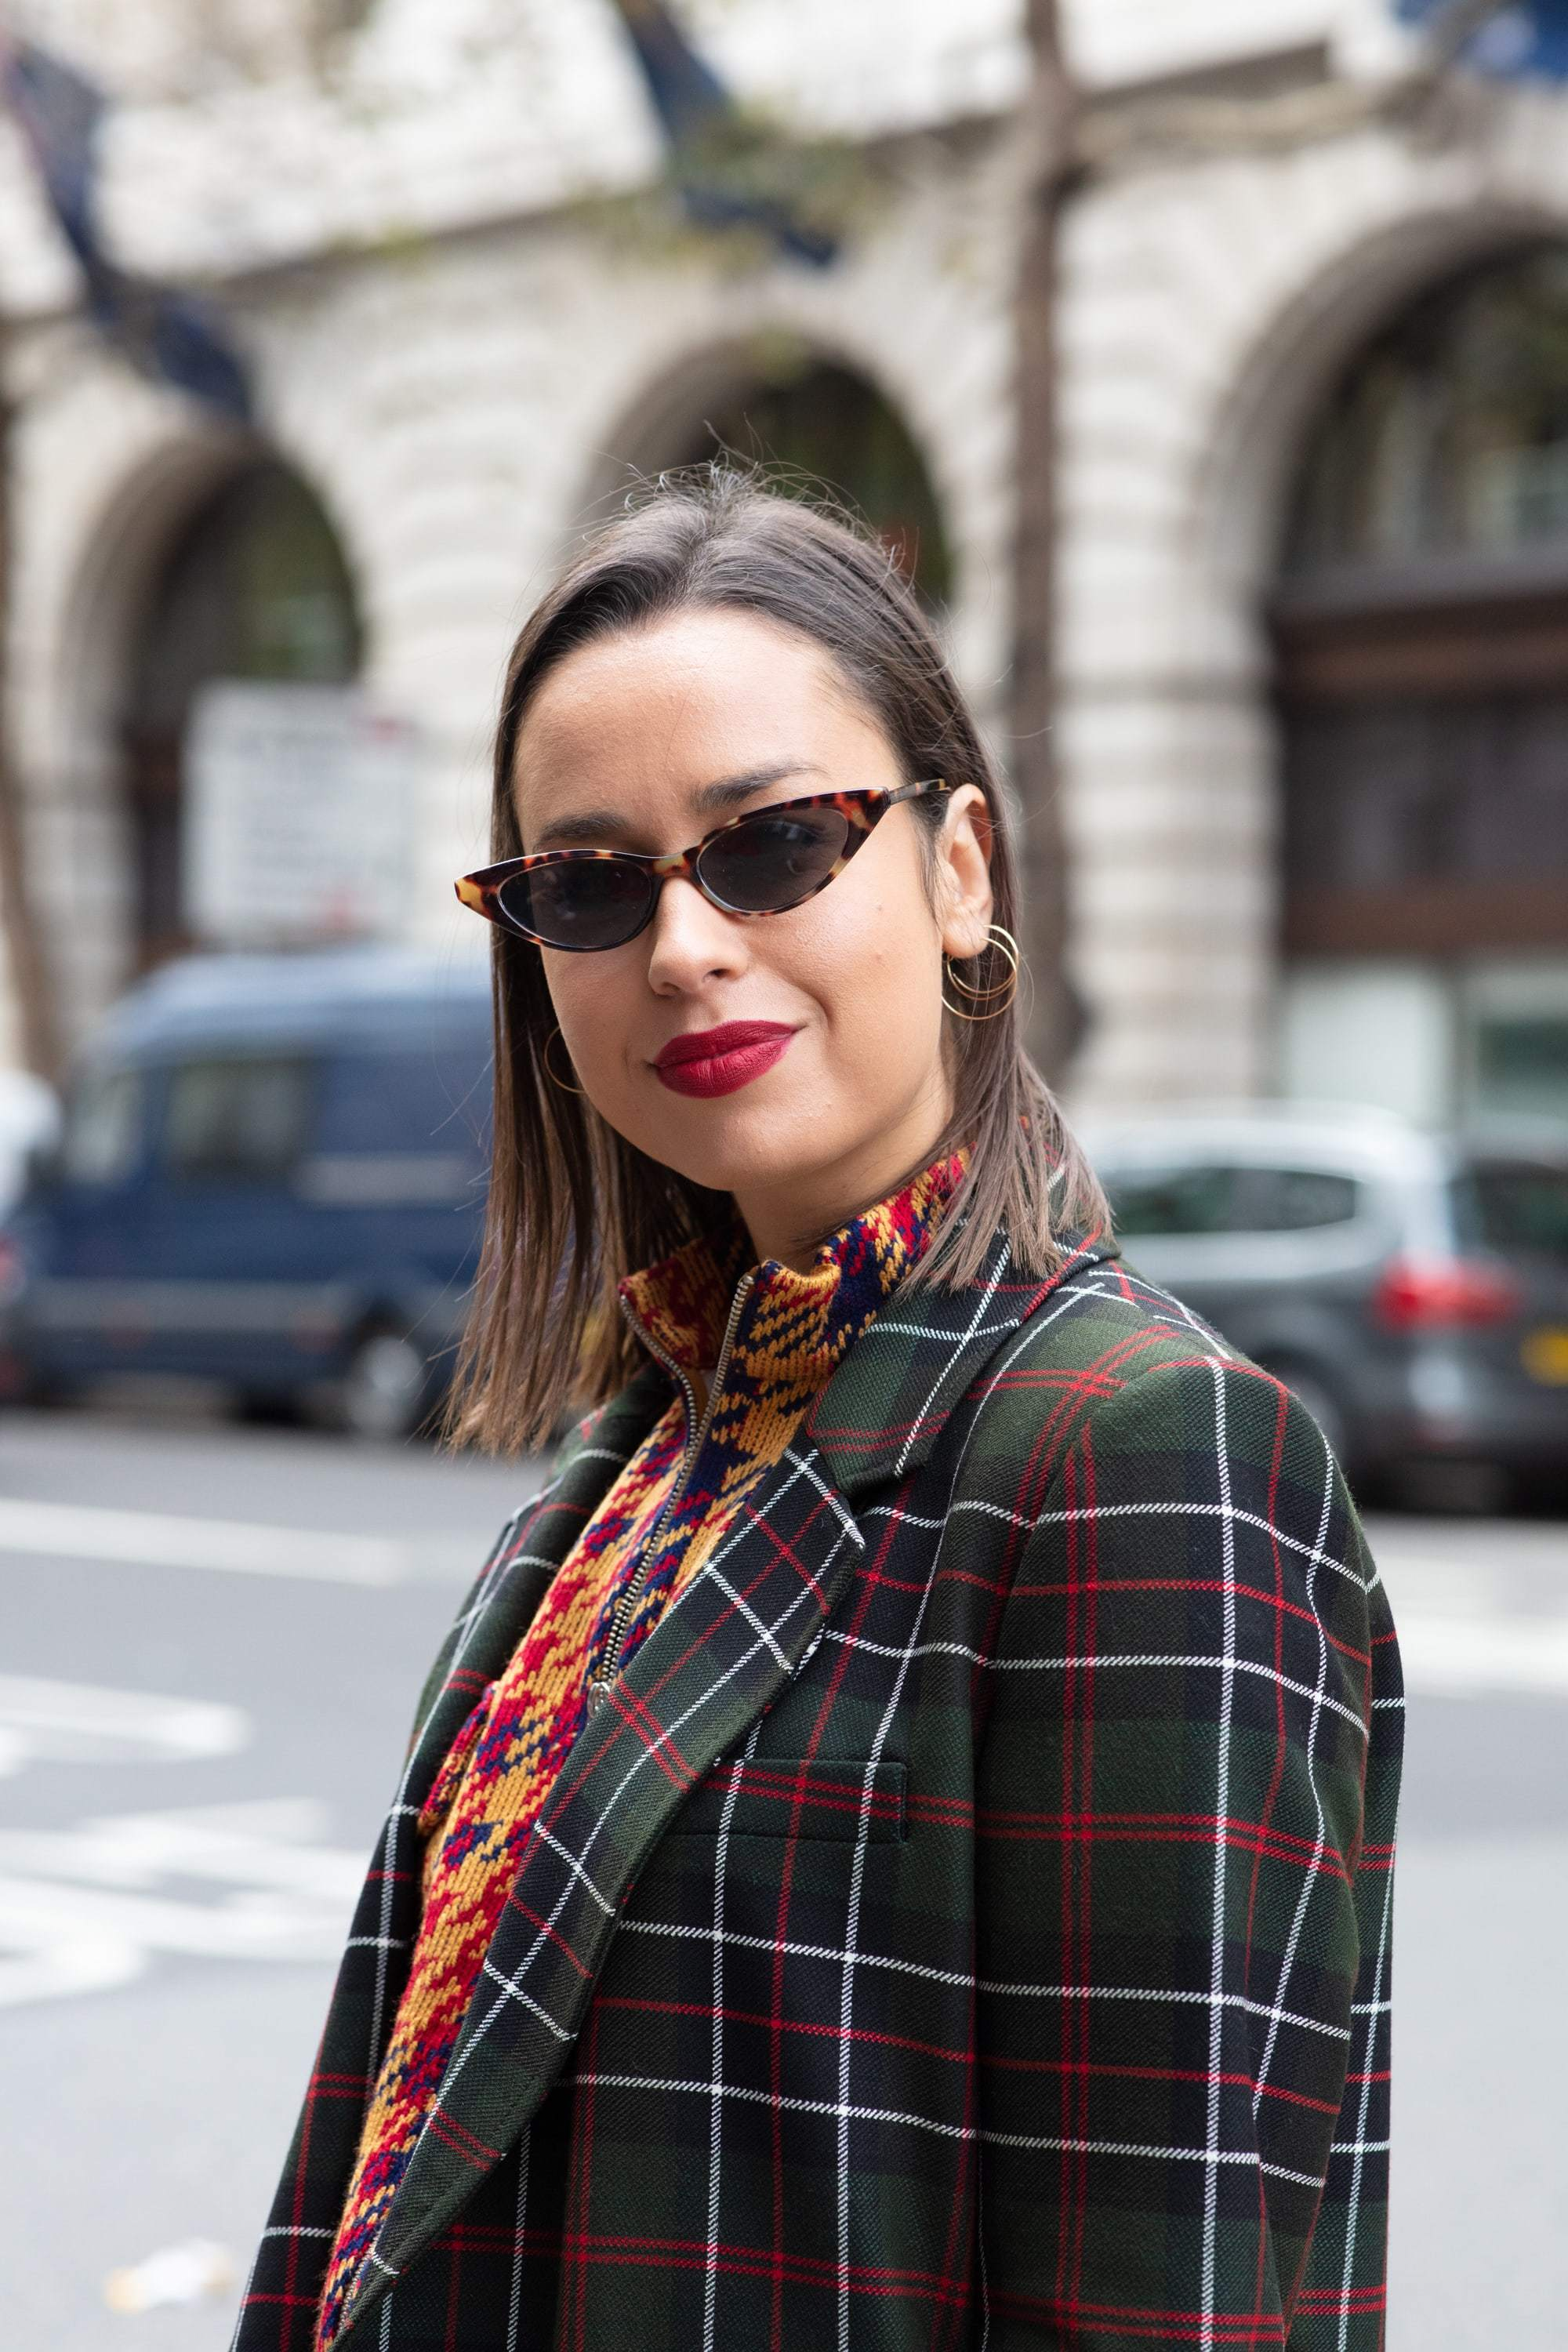 Hair treatment guide: Woman with blunt cut chestnut long bob, wearing checked jacket with tiny glasses